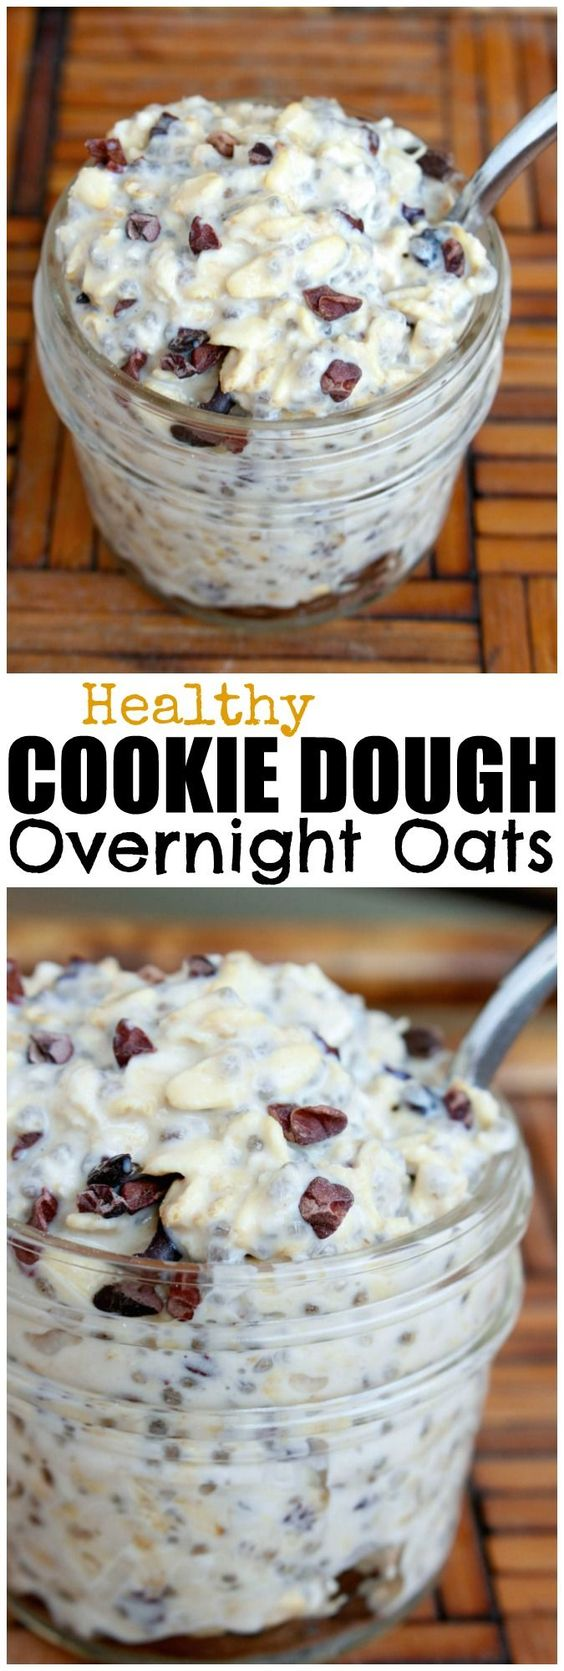 Healthy cookie dough, Overnight oats and Cookie dough on Pinterest